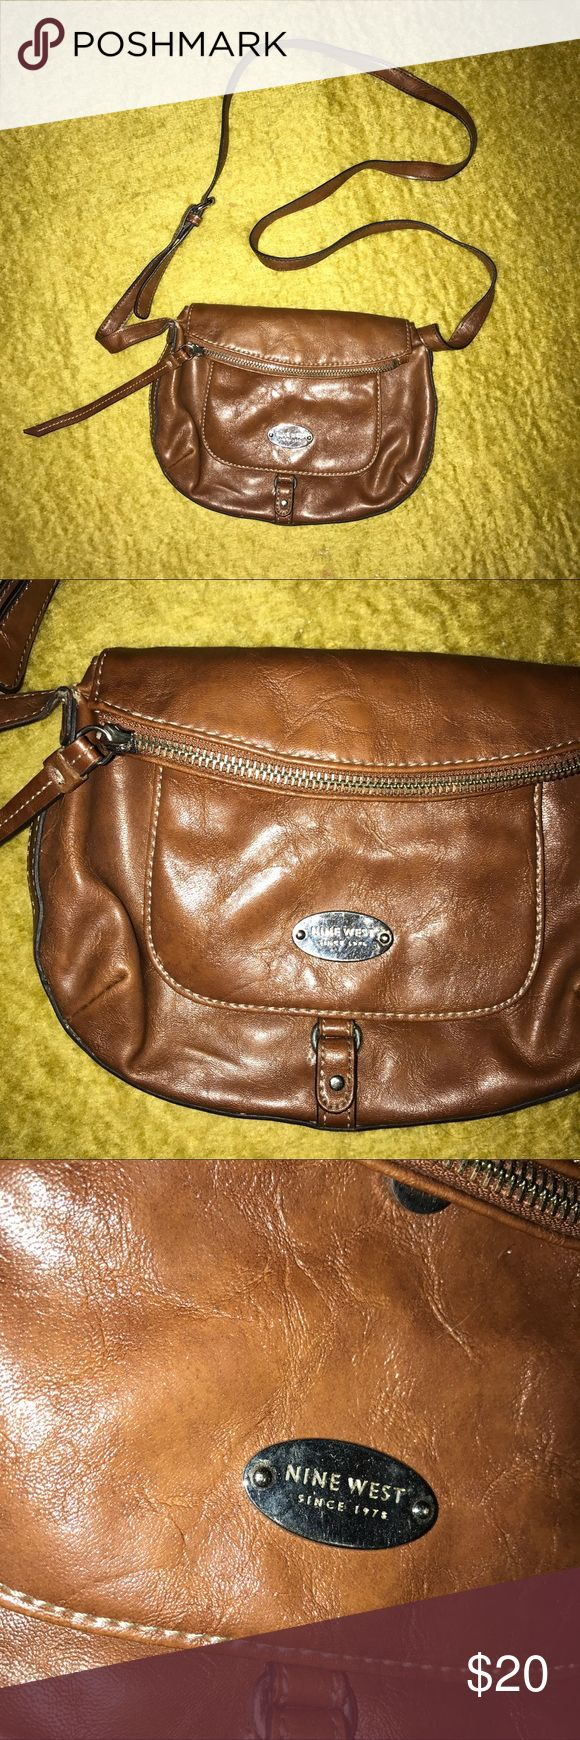 Vintage Nine West Crossbody Faux Leather Brown Bag Nine West faux leather crossbody zip up mini purse fits nicely over the shoulder and is a great addition to your handbag collection! Has a magnetic snap closure with a main pocket that stretches out to unzip. Also features a classic Nine West nameplate. Adjustable straps. In thrifted condition. Nine West Bags Crossbody Bags